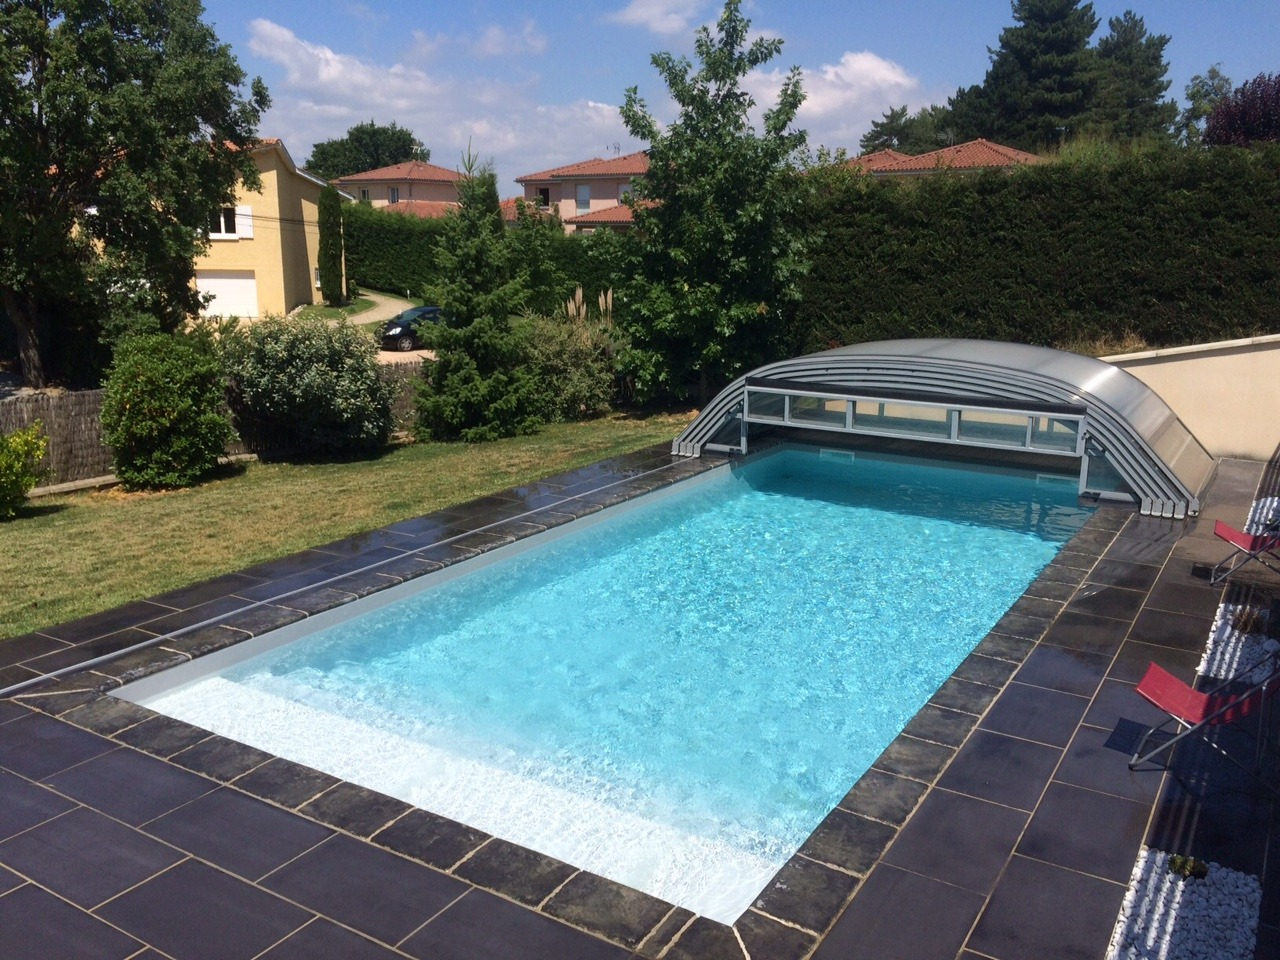 Elitys mianso abri de piscine bas t lescopique ec 39 creation for Abris de piscine occasion